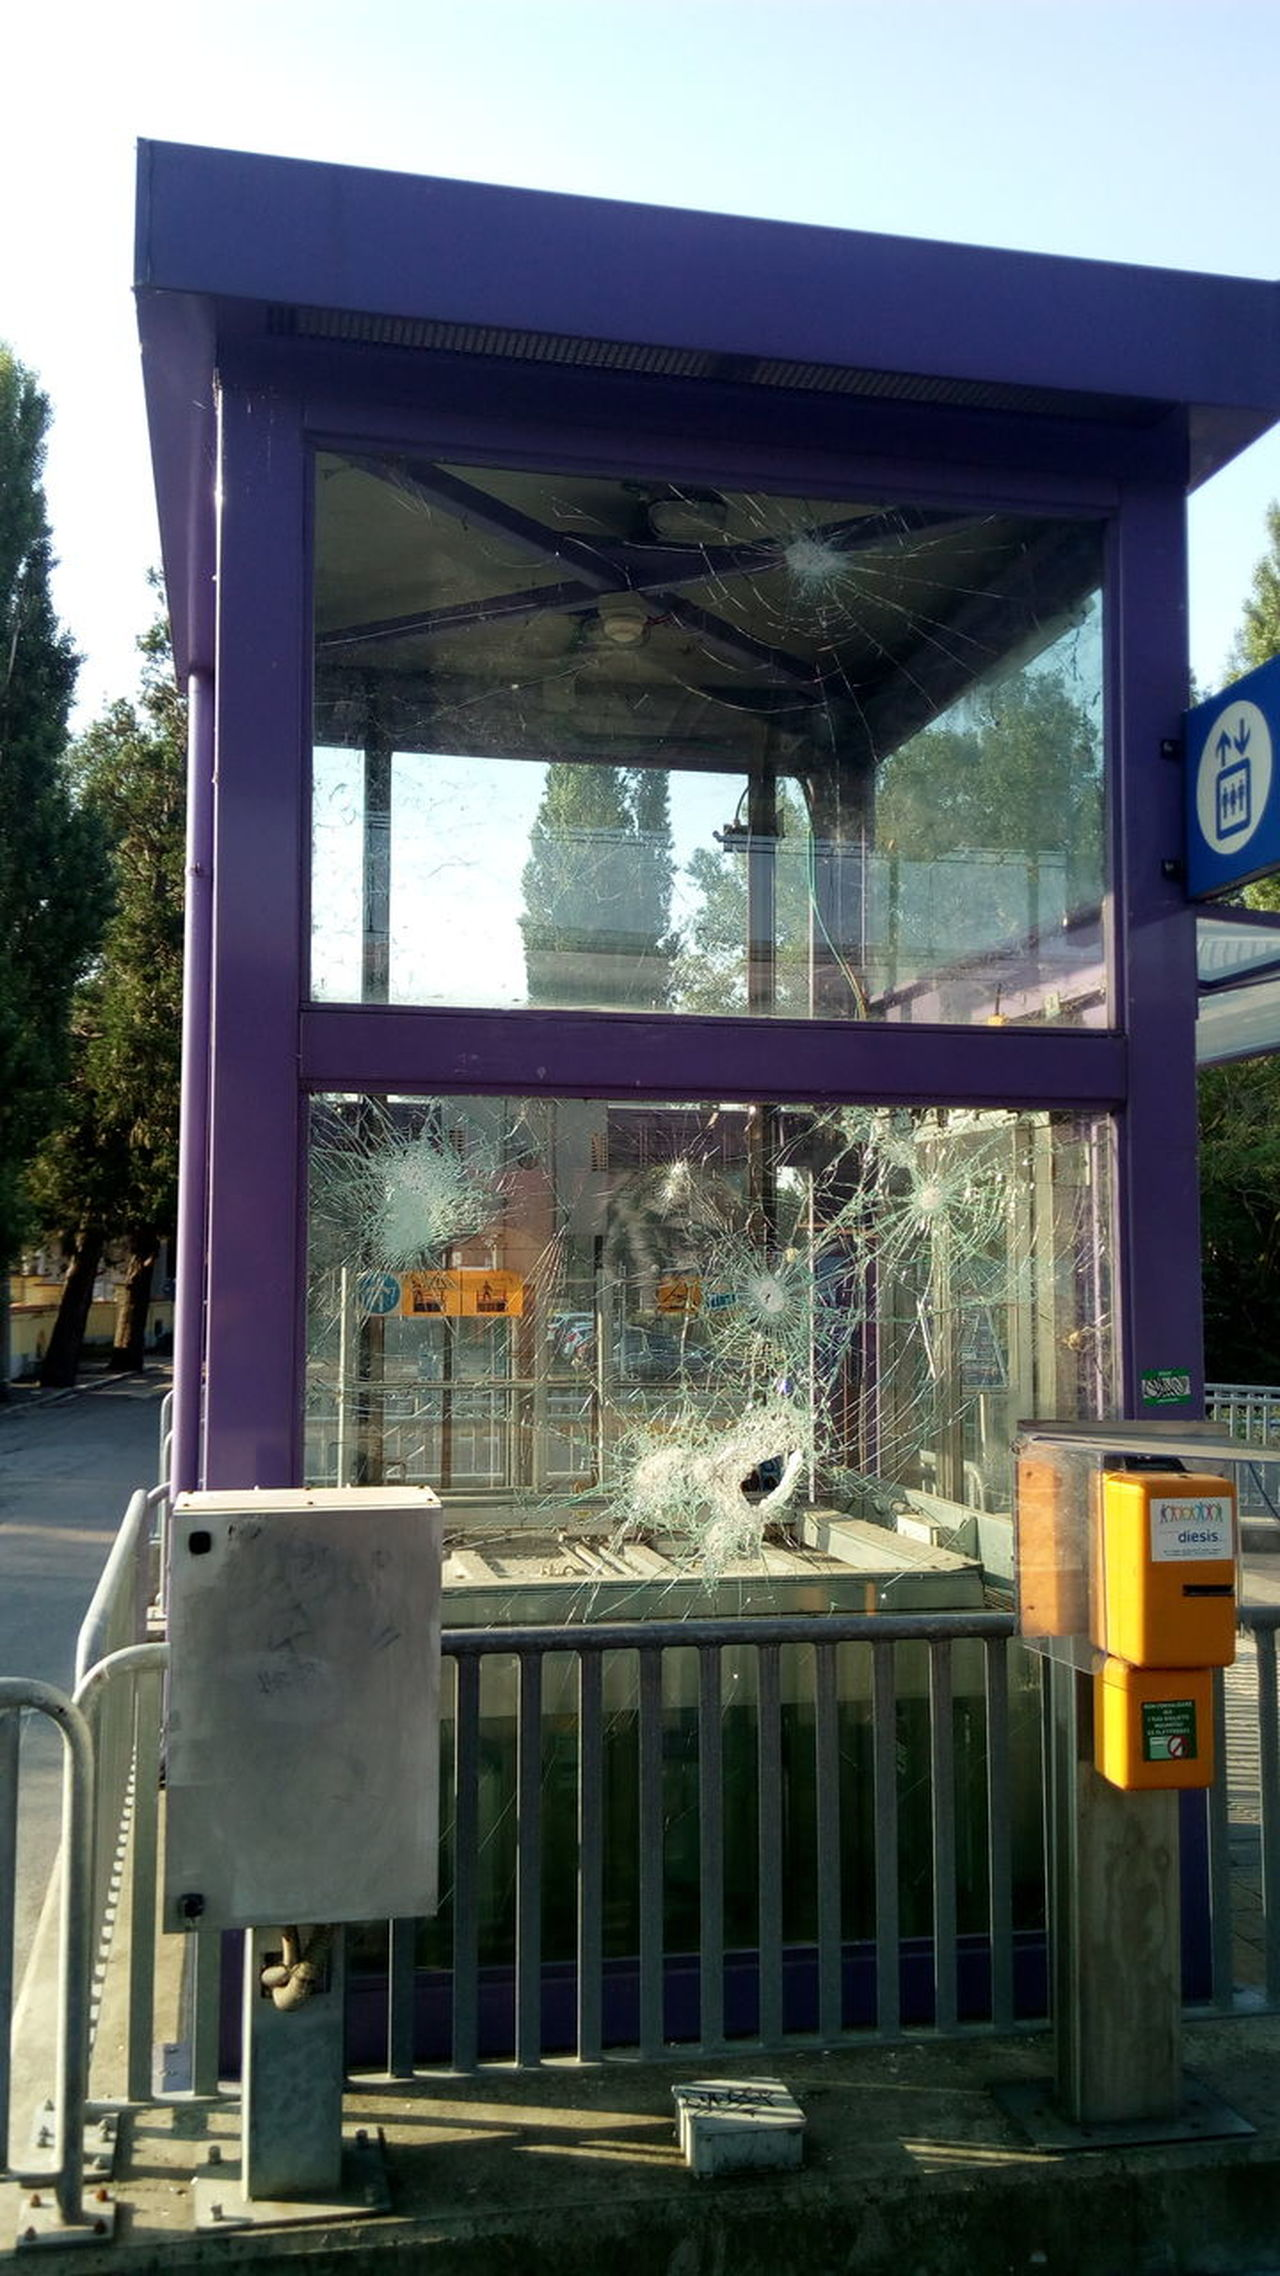 Outdoors Built Structure Vandalism Glass Lift Tower No People Day Destruction Railway Station